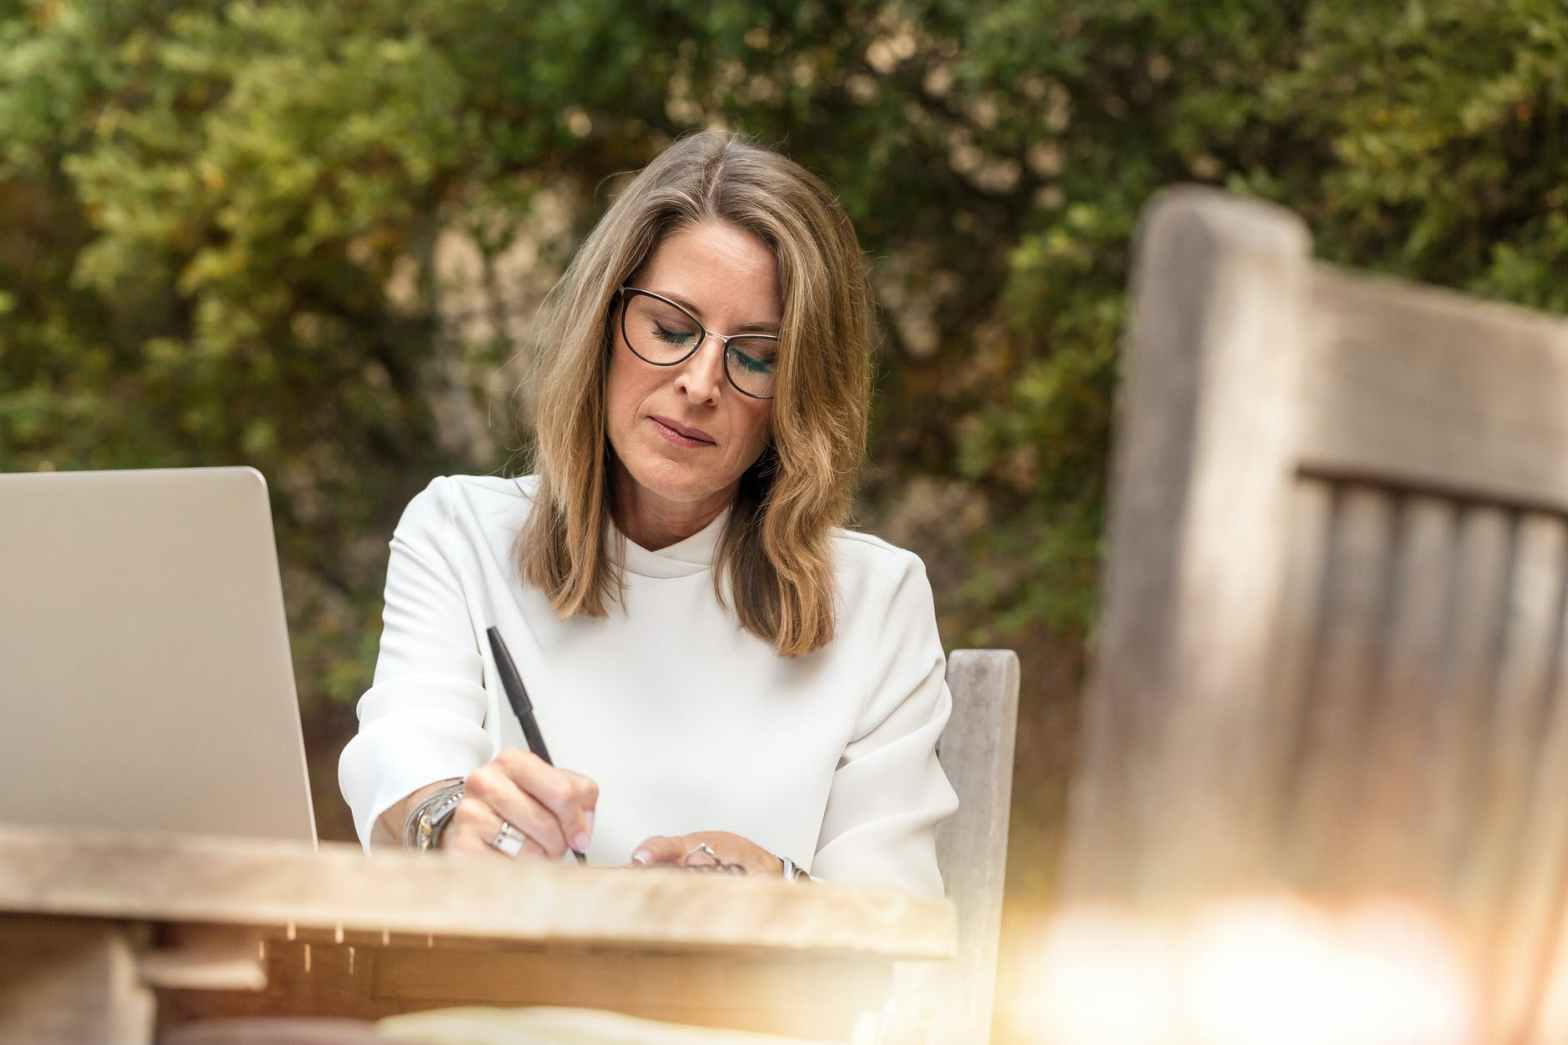 woman sitting on gray chair while writing on table